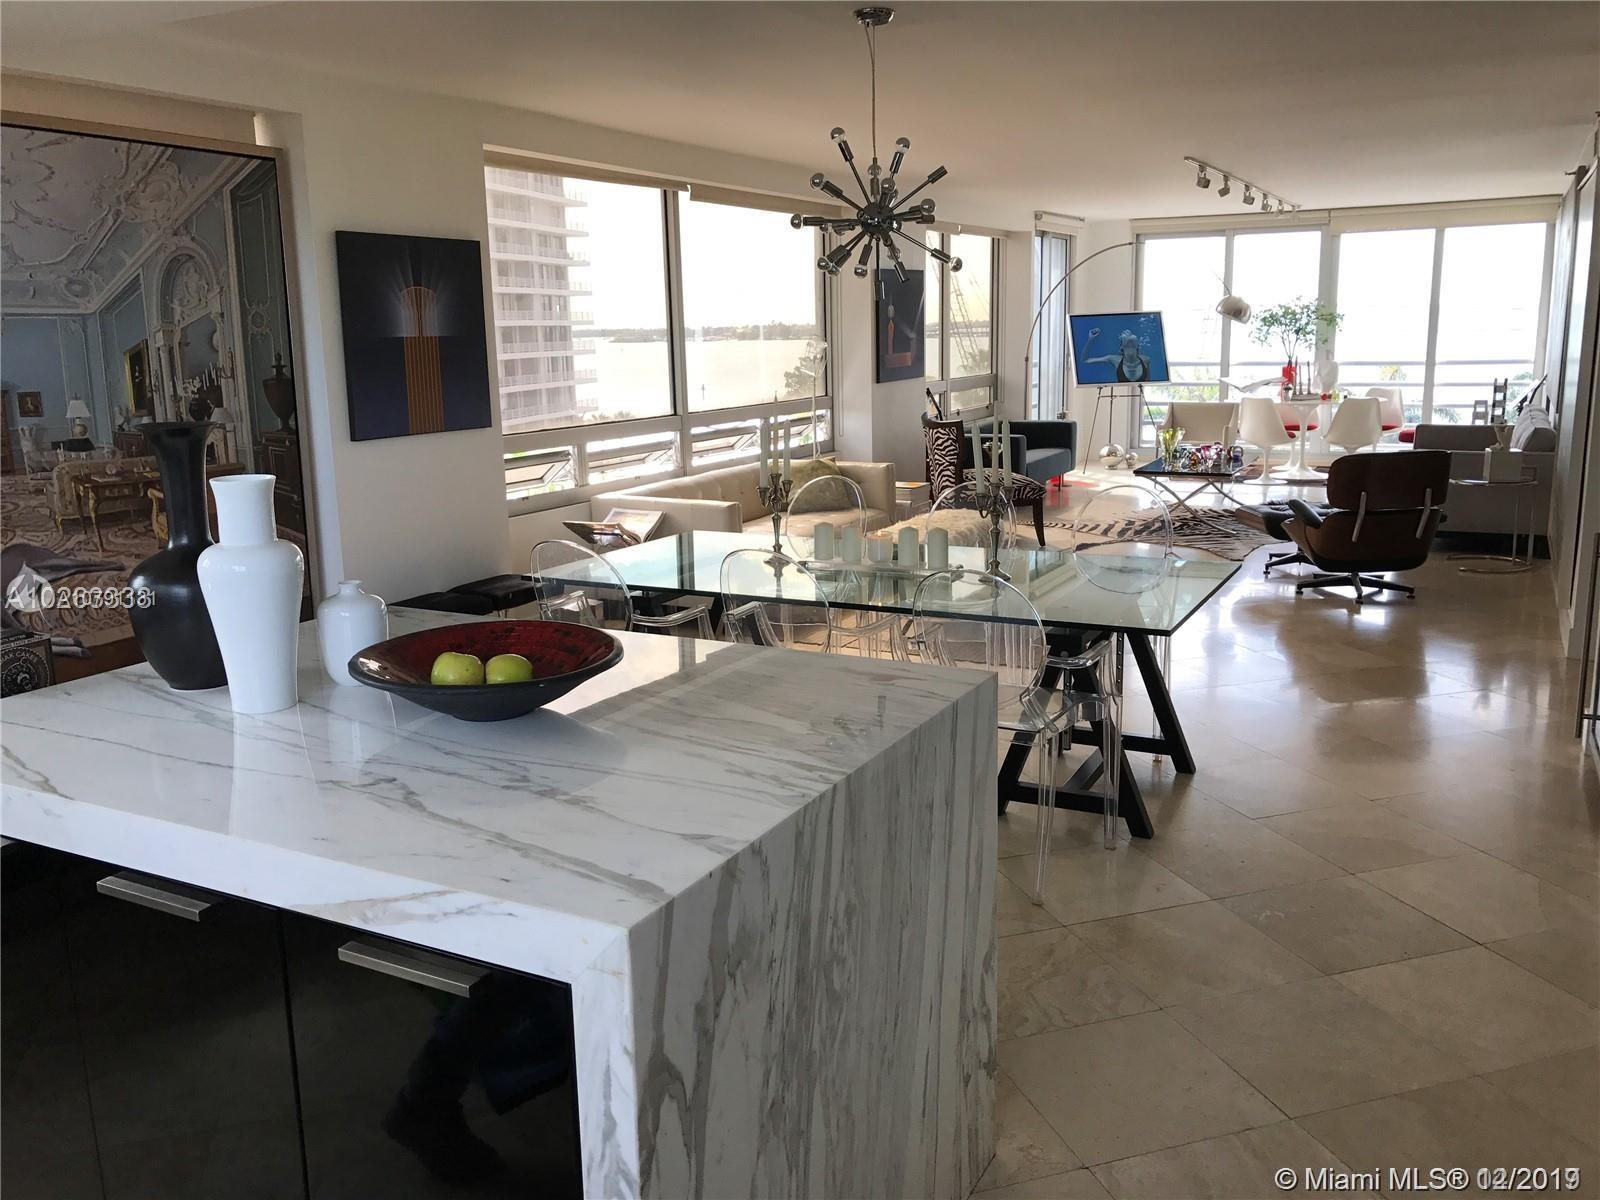 Beautiful corner unit of 3 bedrooms and 2 bath, 2000 sf of A/C. ( both balconies were added to the apartment during remodeling)  Amazing wide open bay views on one side and city skyline Brickell Ave views on the other side. Italian kitchen, calacatta marble kitchen island, top of the line viking appliances. One of the few 3 bedrooms unit in the building and a corner unit with no neighbors walls